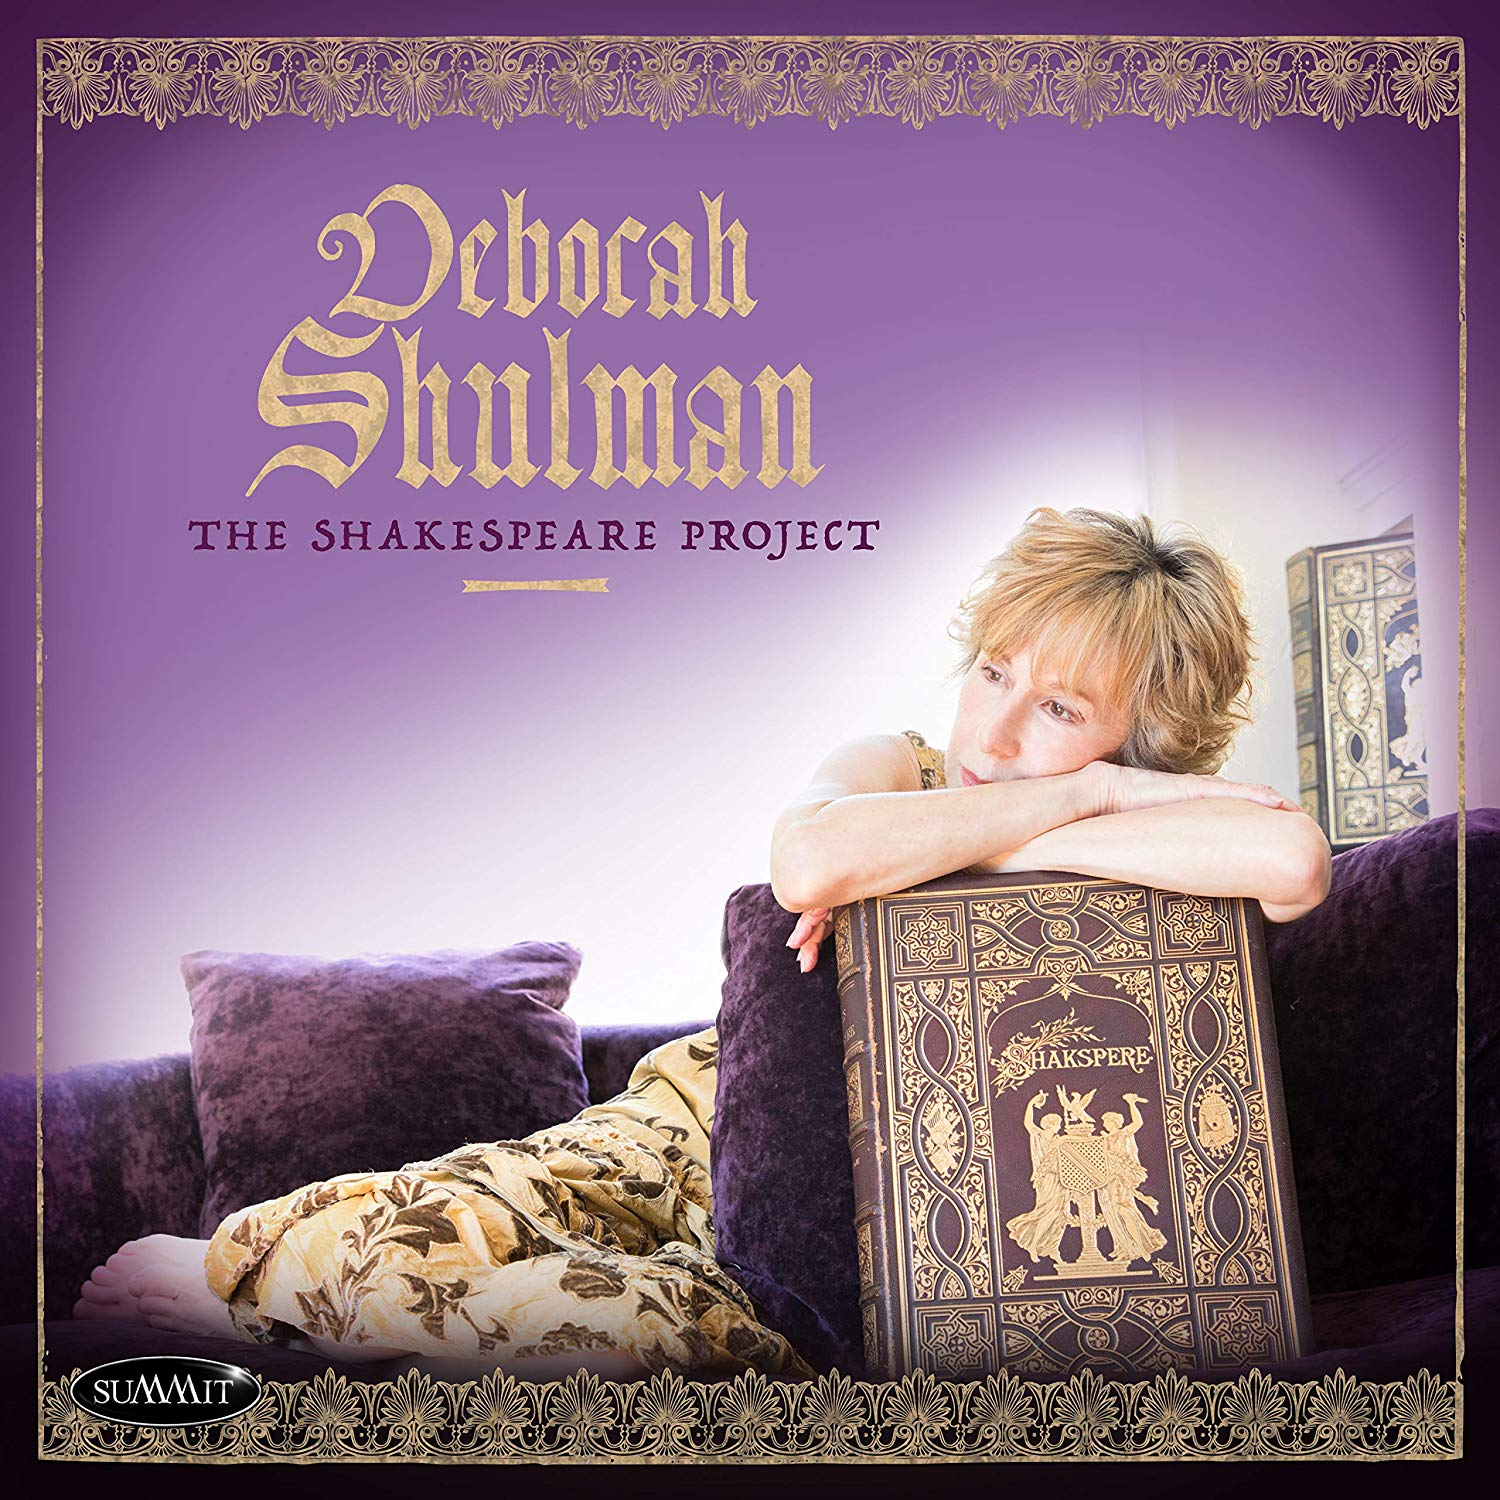 DEBORAH SHULMAN - The Shakespeare Project cover